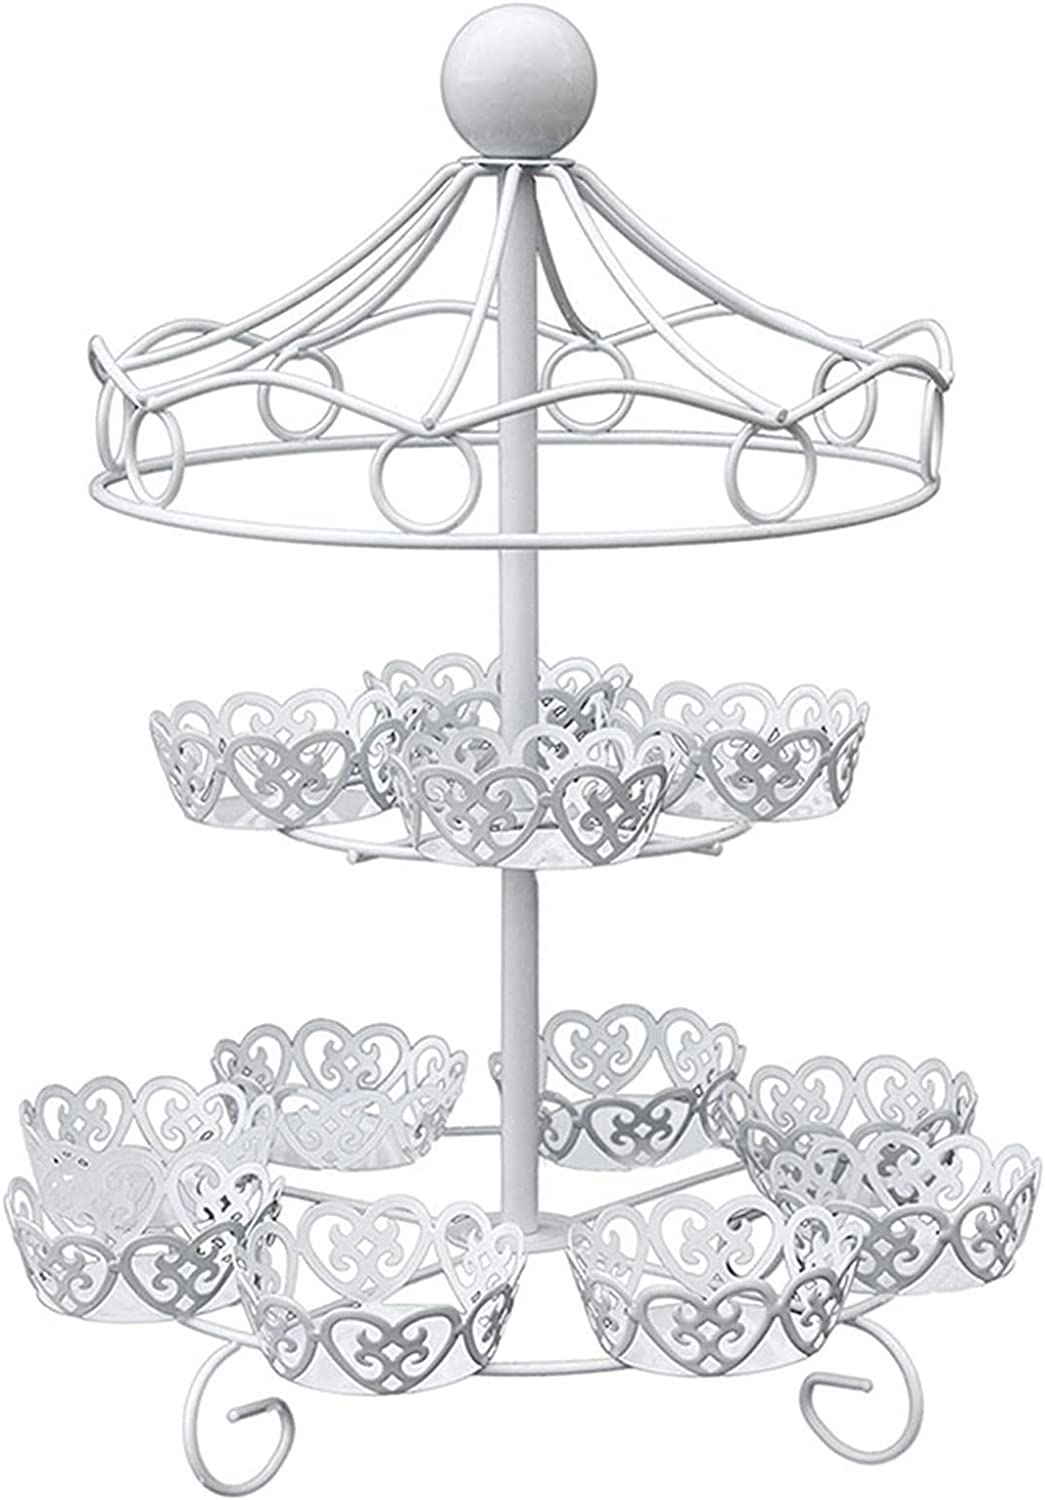 2 Tier Cake Stand Cupcake Display Max Seasonal Wrap Introduction 55% OFF Dessert Suitable fo Tray